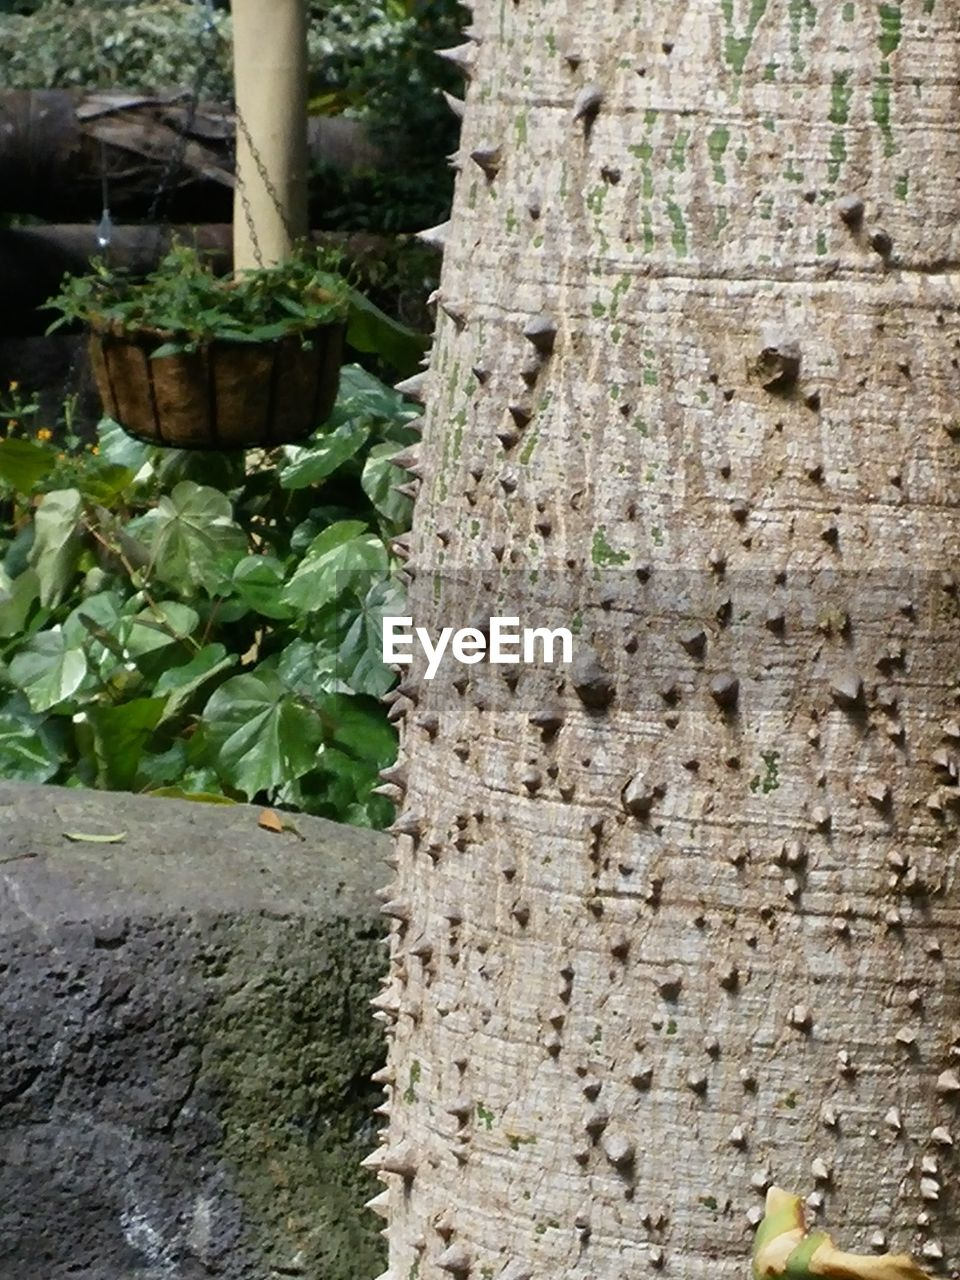 growth, outdoors, plant, day, no people, nature, leaf, tree trunk, tree, close-up, food, beauty in nature, freshness